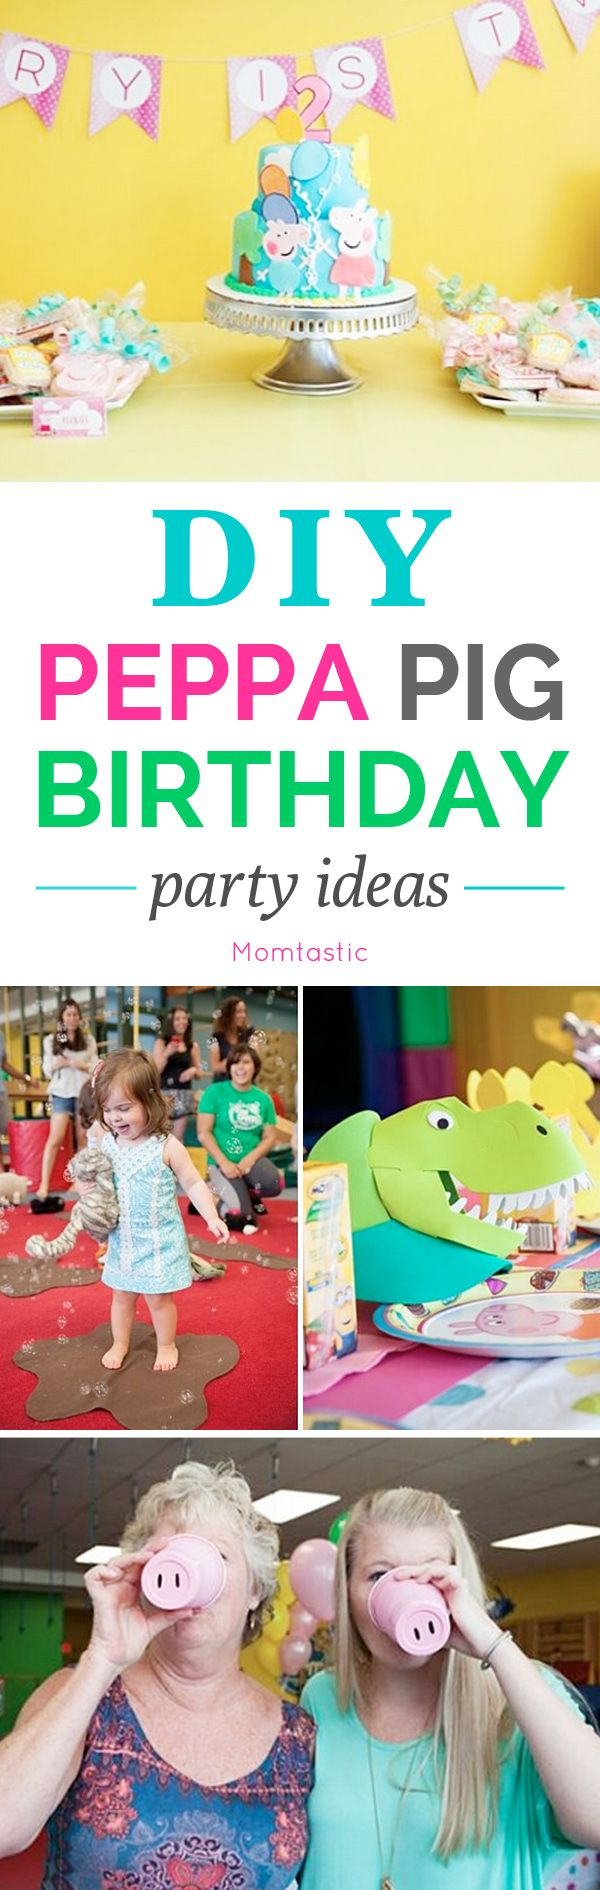 Semi Diy Peppa Pig Birthday Party All The Supplies You Need Kids